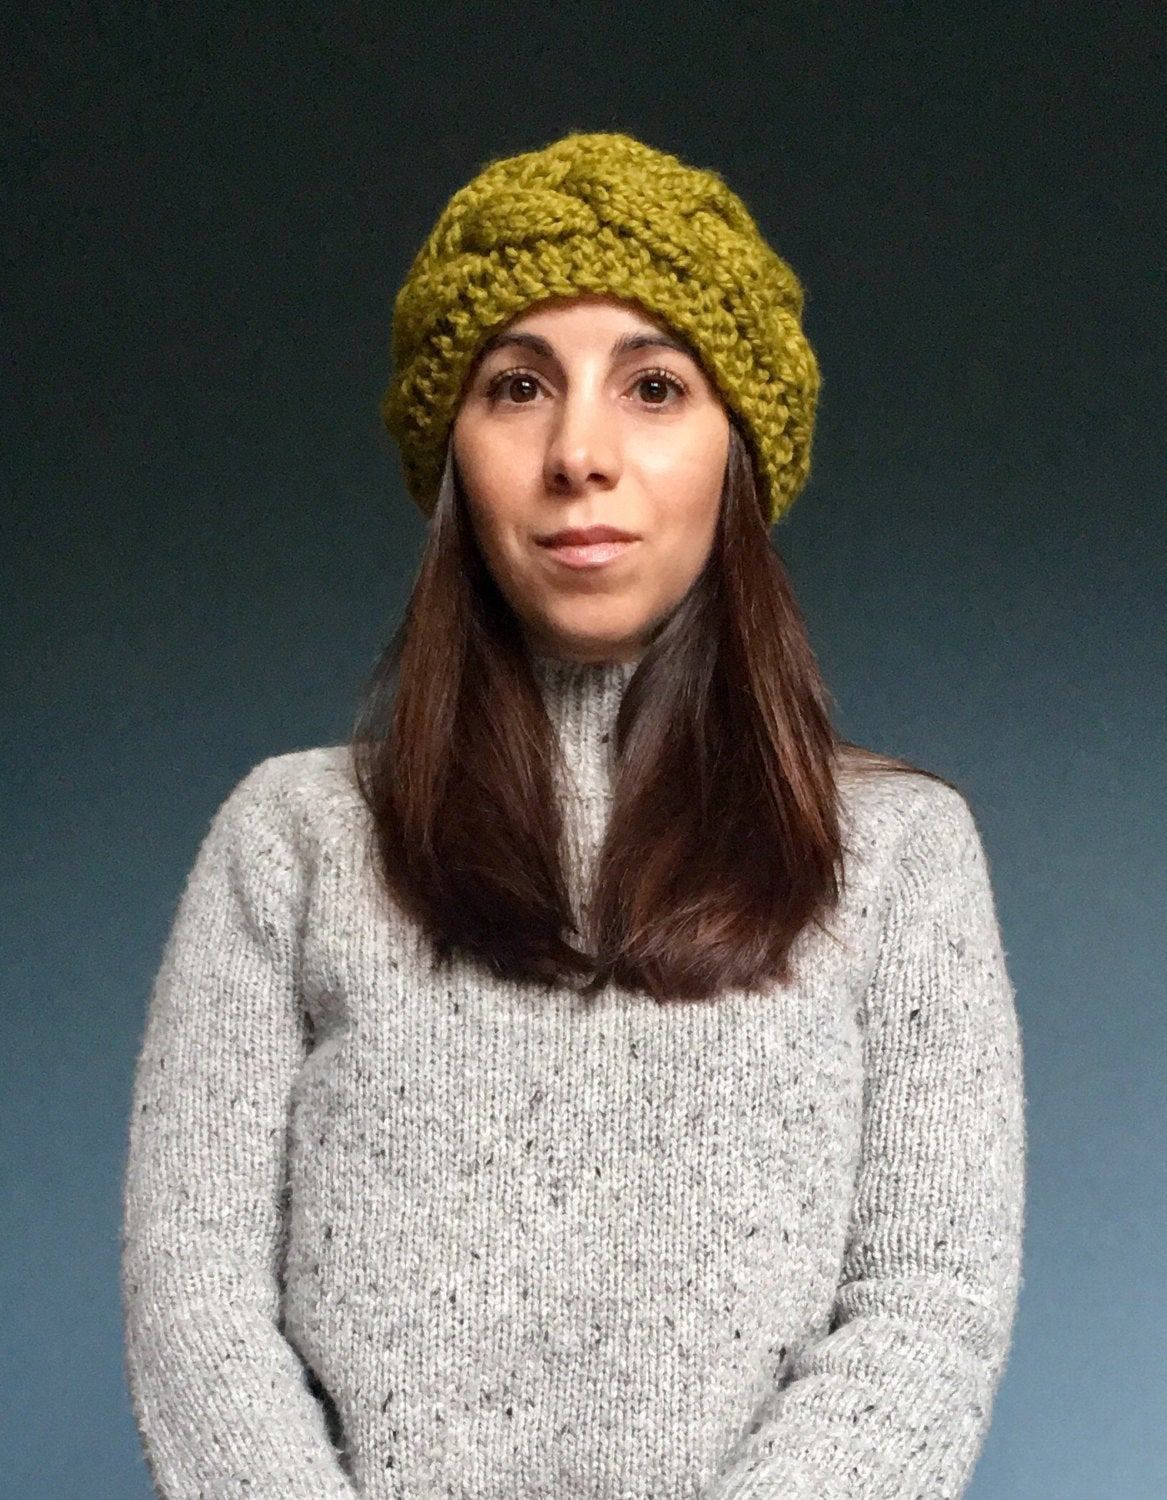 Easy Cable Knit Headband Pattern Knitting Pattern The Emma Cabled Ear Warmer Headband